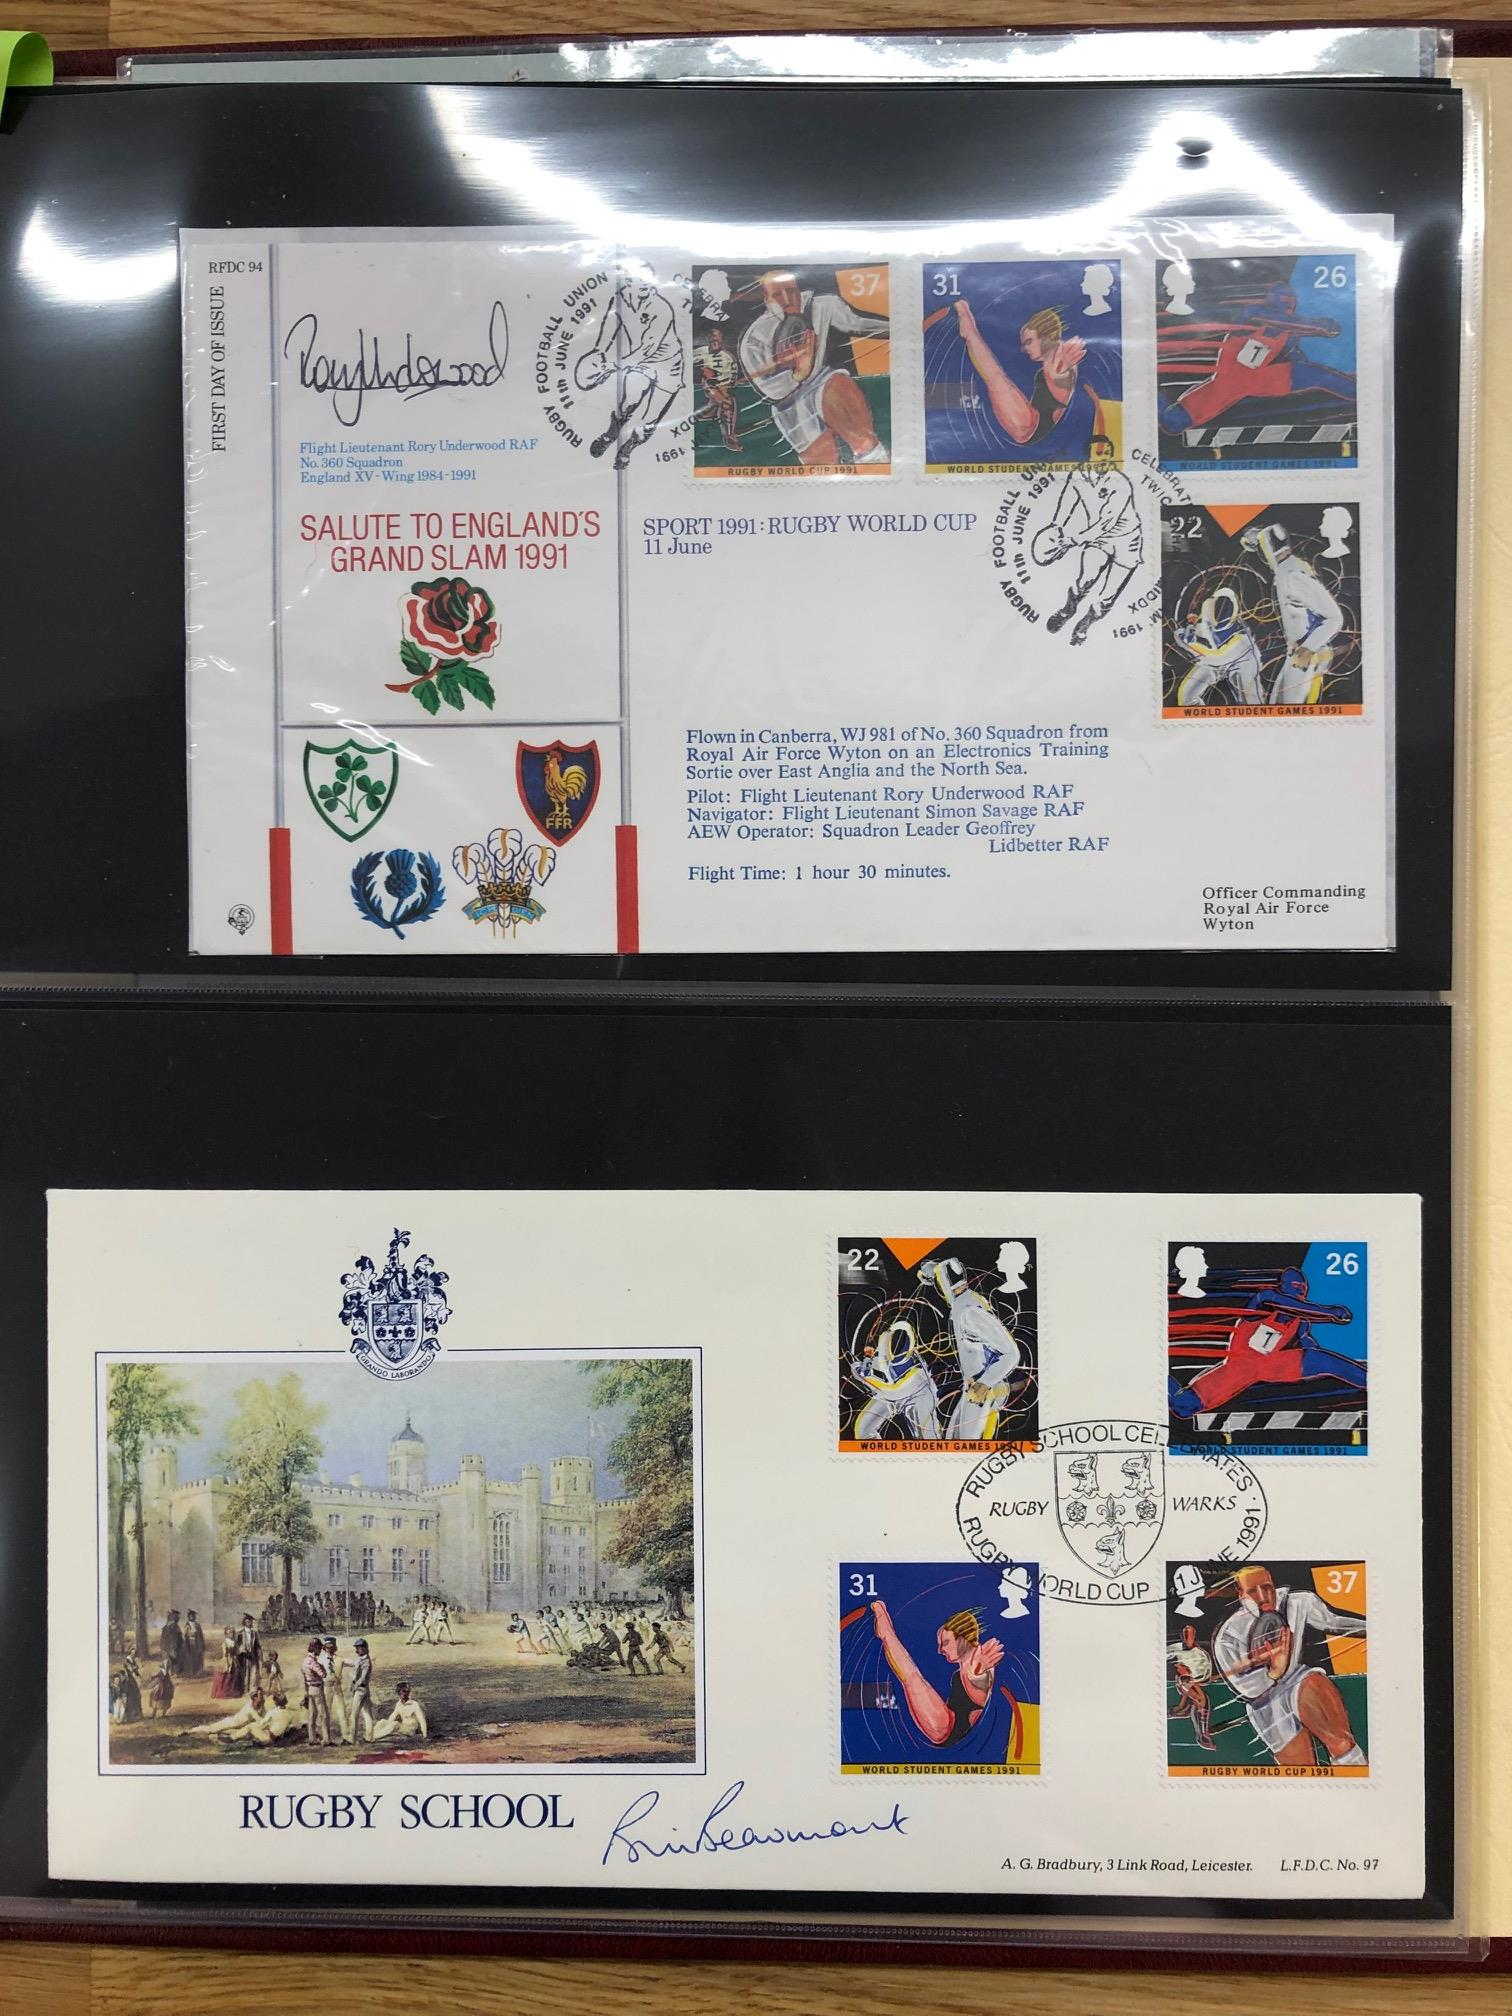 COIN COVERS 2003 Rugby World Cup, a selection of 12 special covers, 3 being signed by Bill Beaumont,